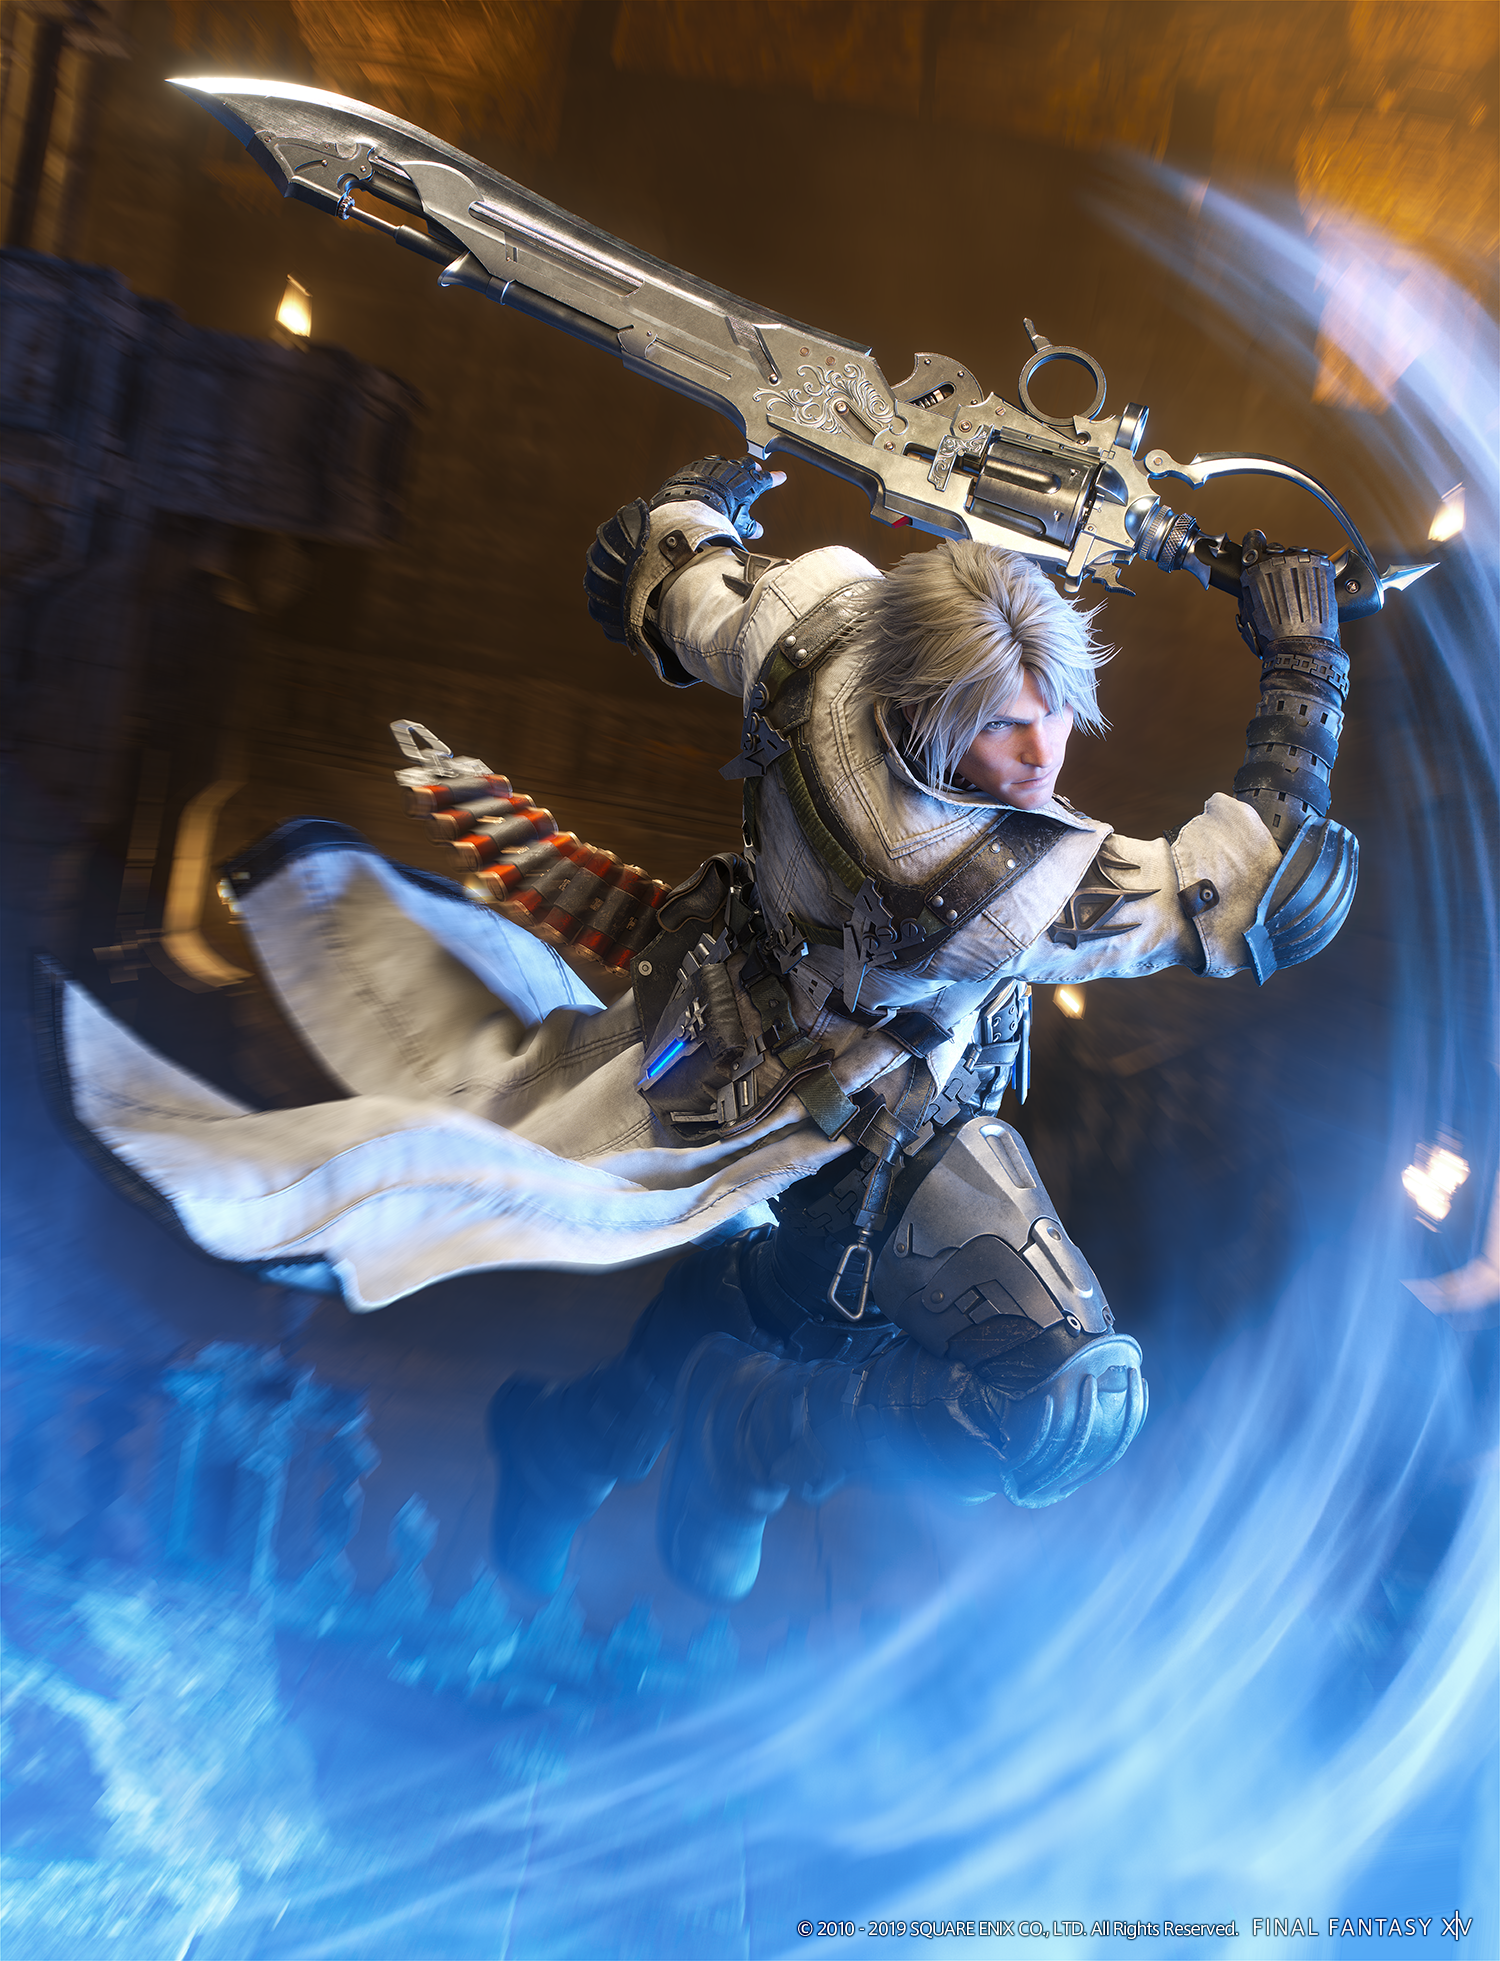 Why 'Final Fantasy XIV' Is in the Guinness Book of World Records